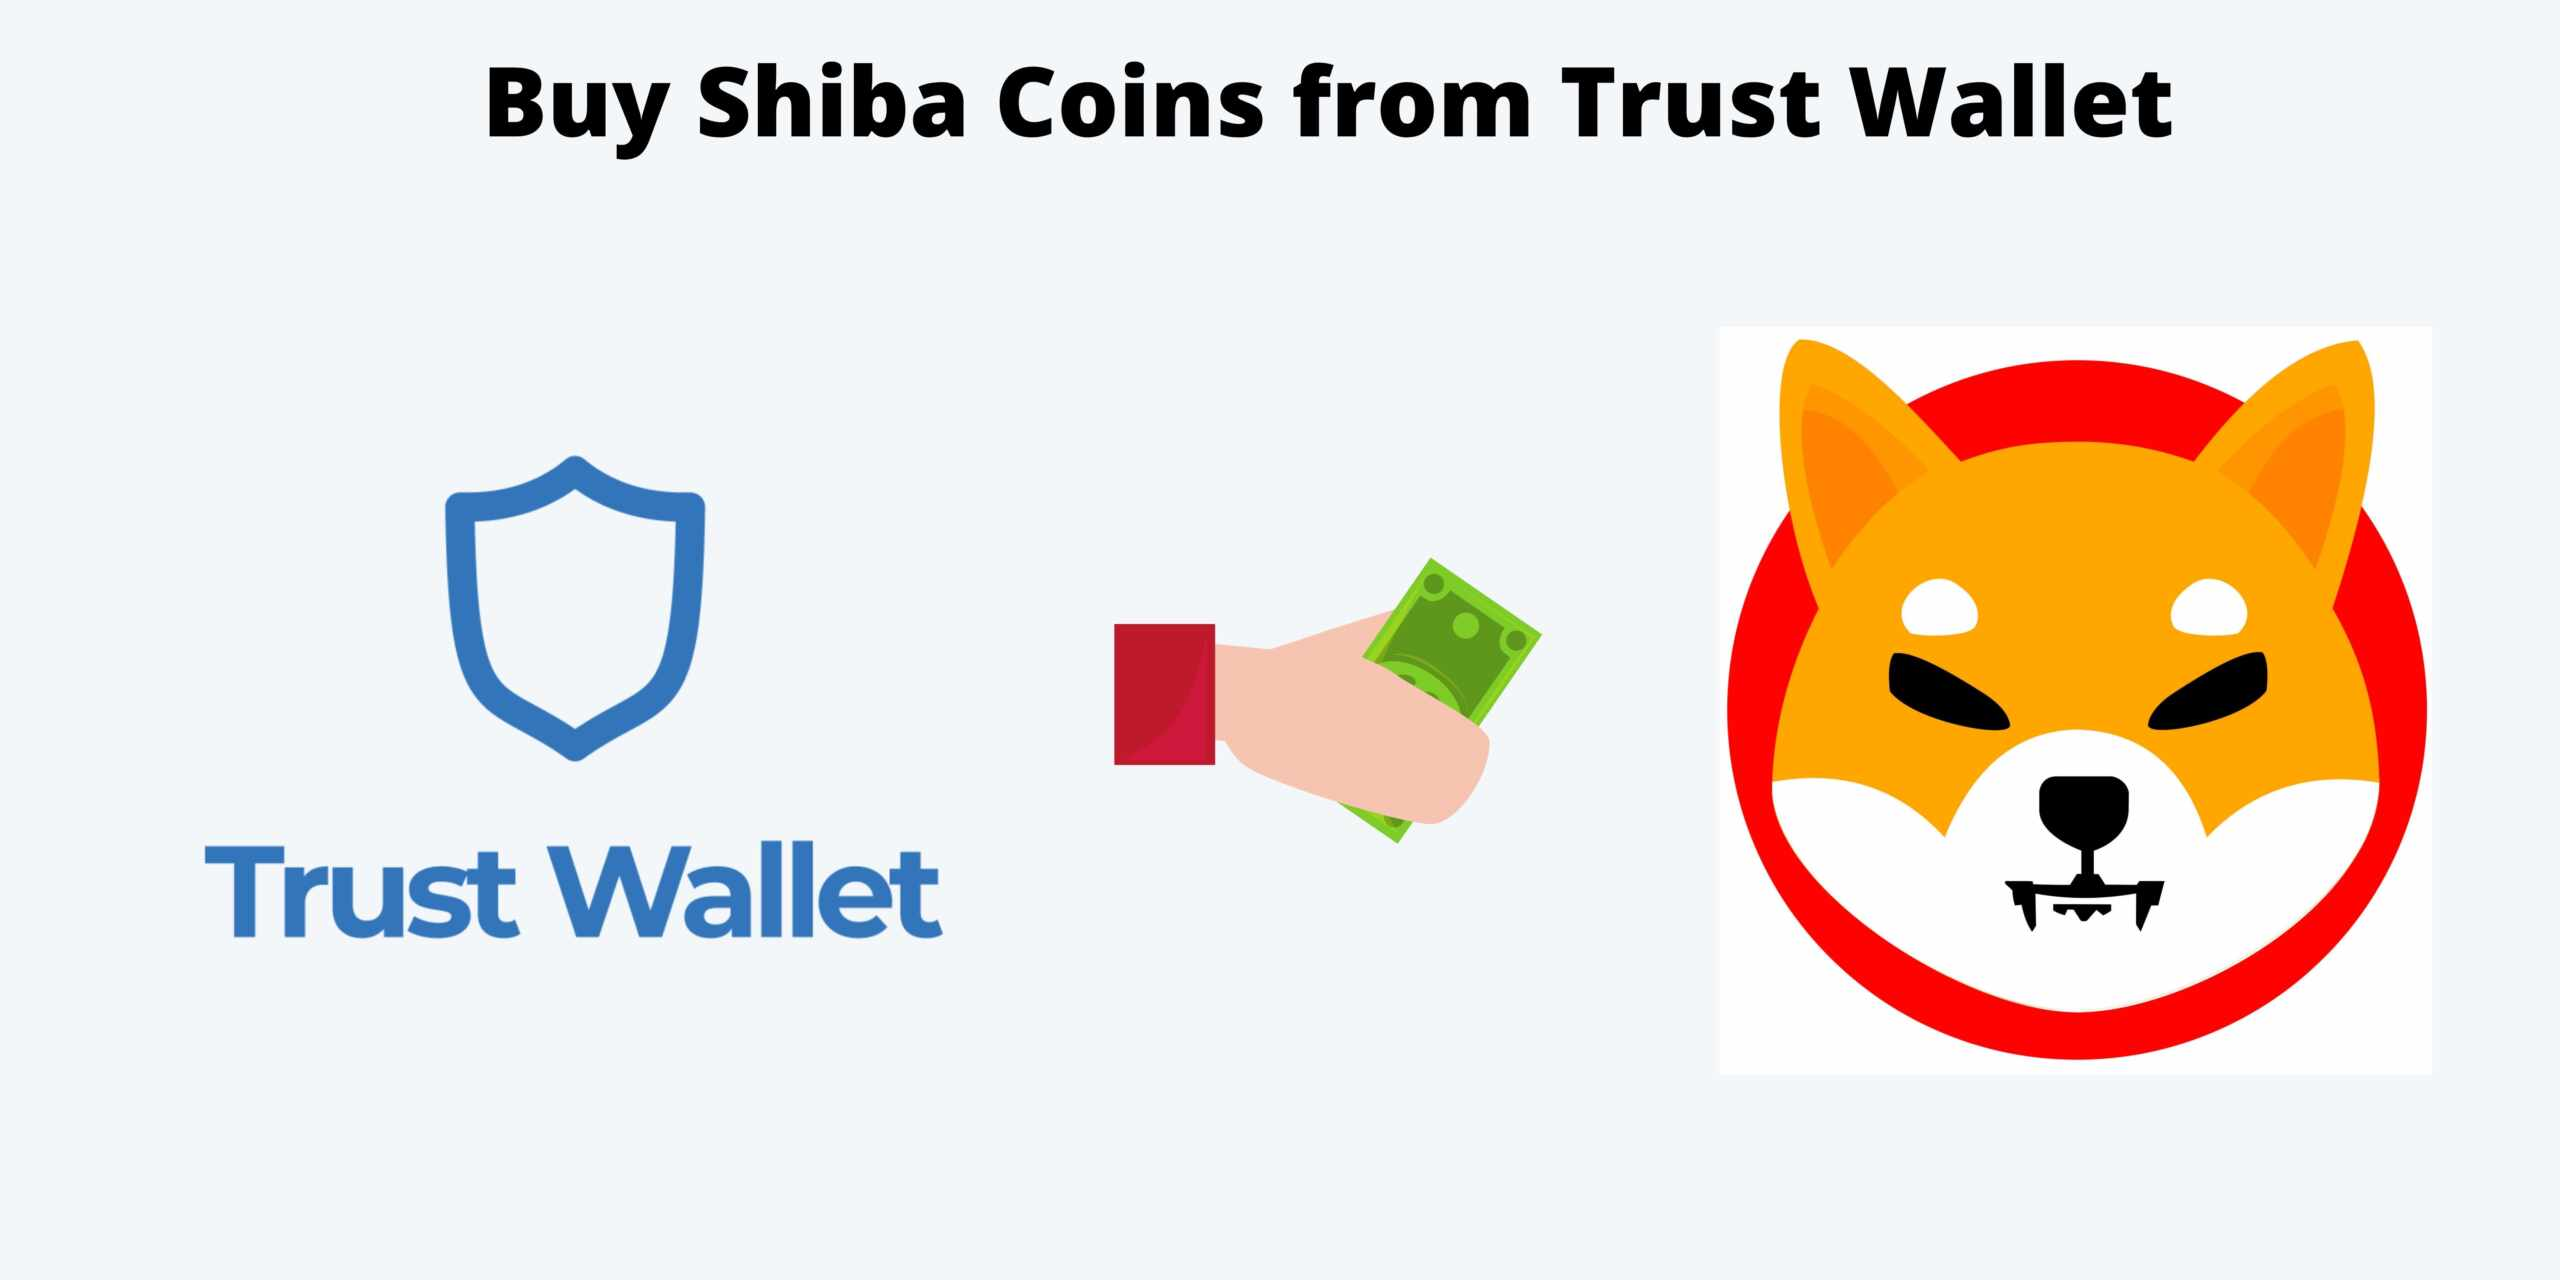 Buy-Shiba-Coins-from-Trust-Wallet